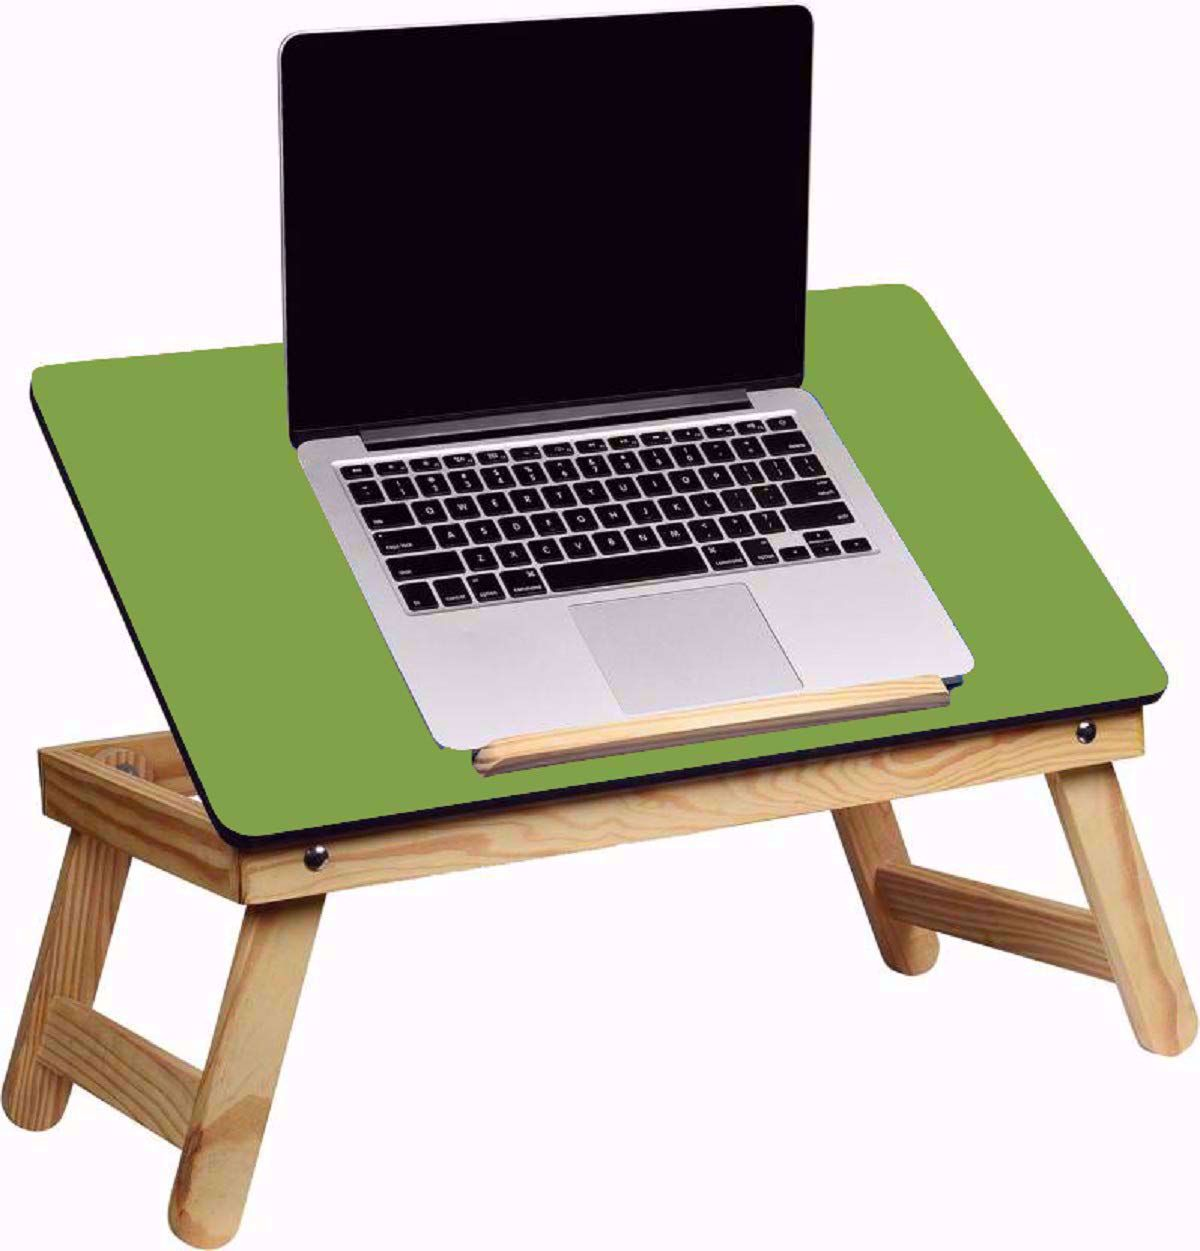 Laptop Desk Bed Student Study Meal Table -Green